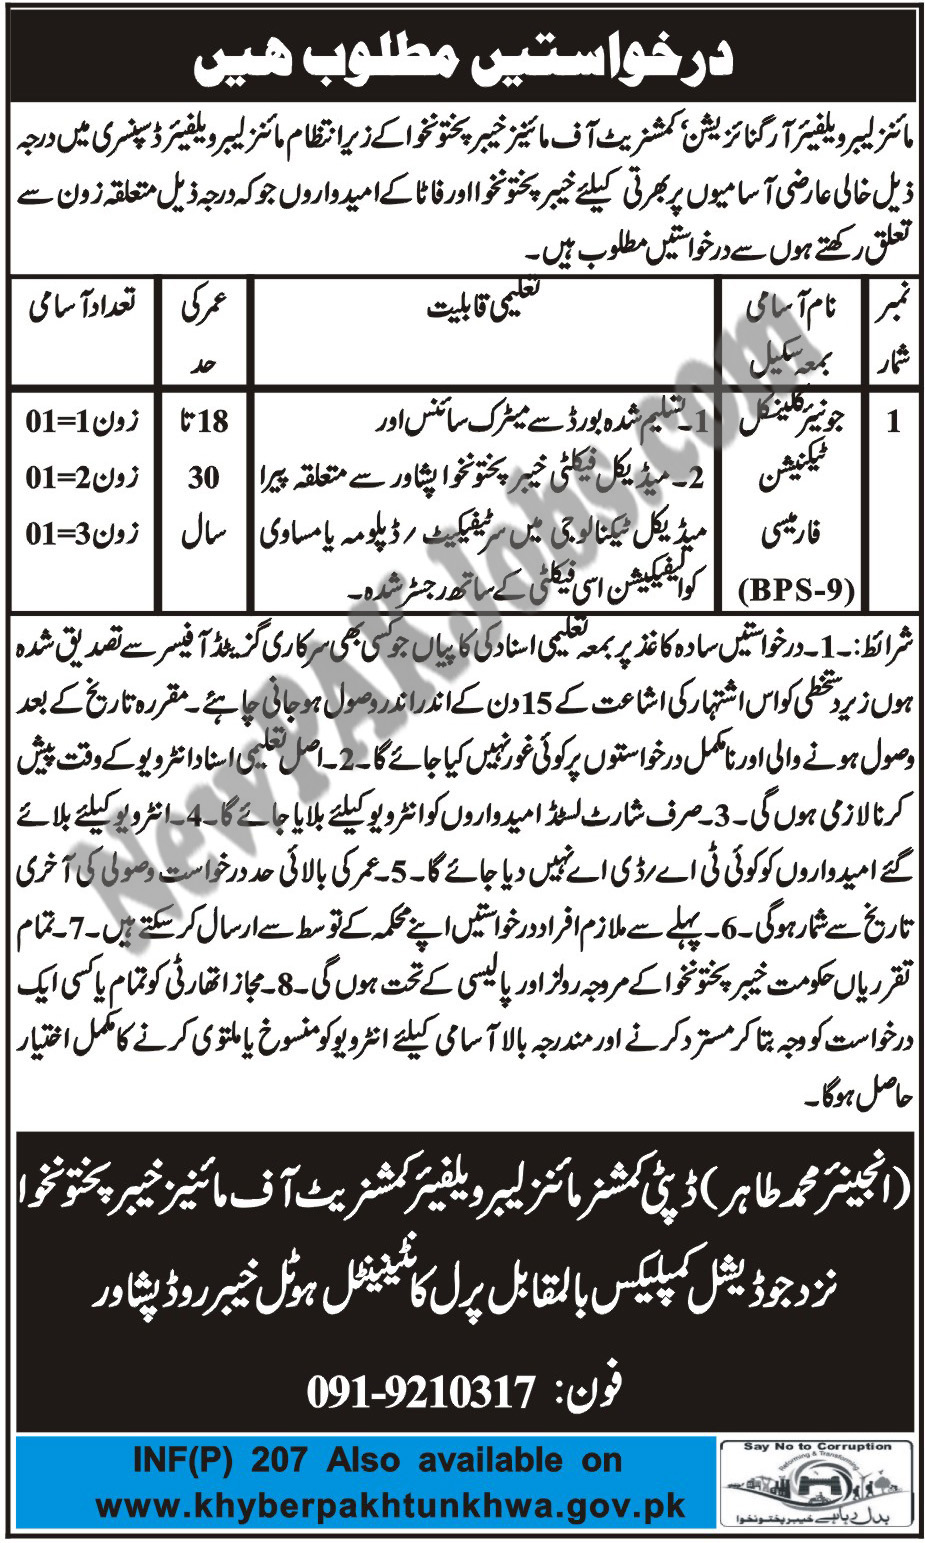 New Jobs in KPK,FATA in Mines Labor Welfare Organization Sunday Newspaper Advertisements